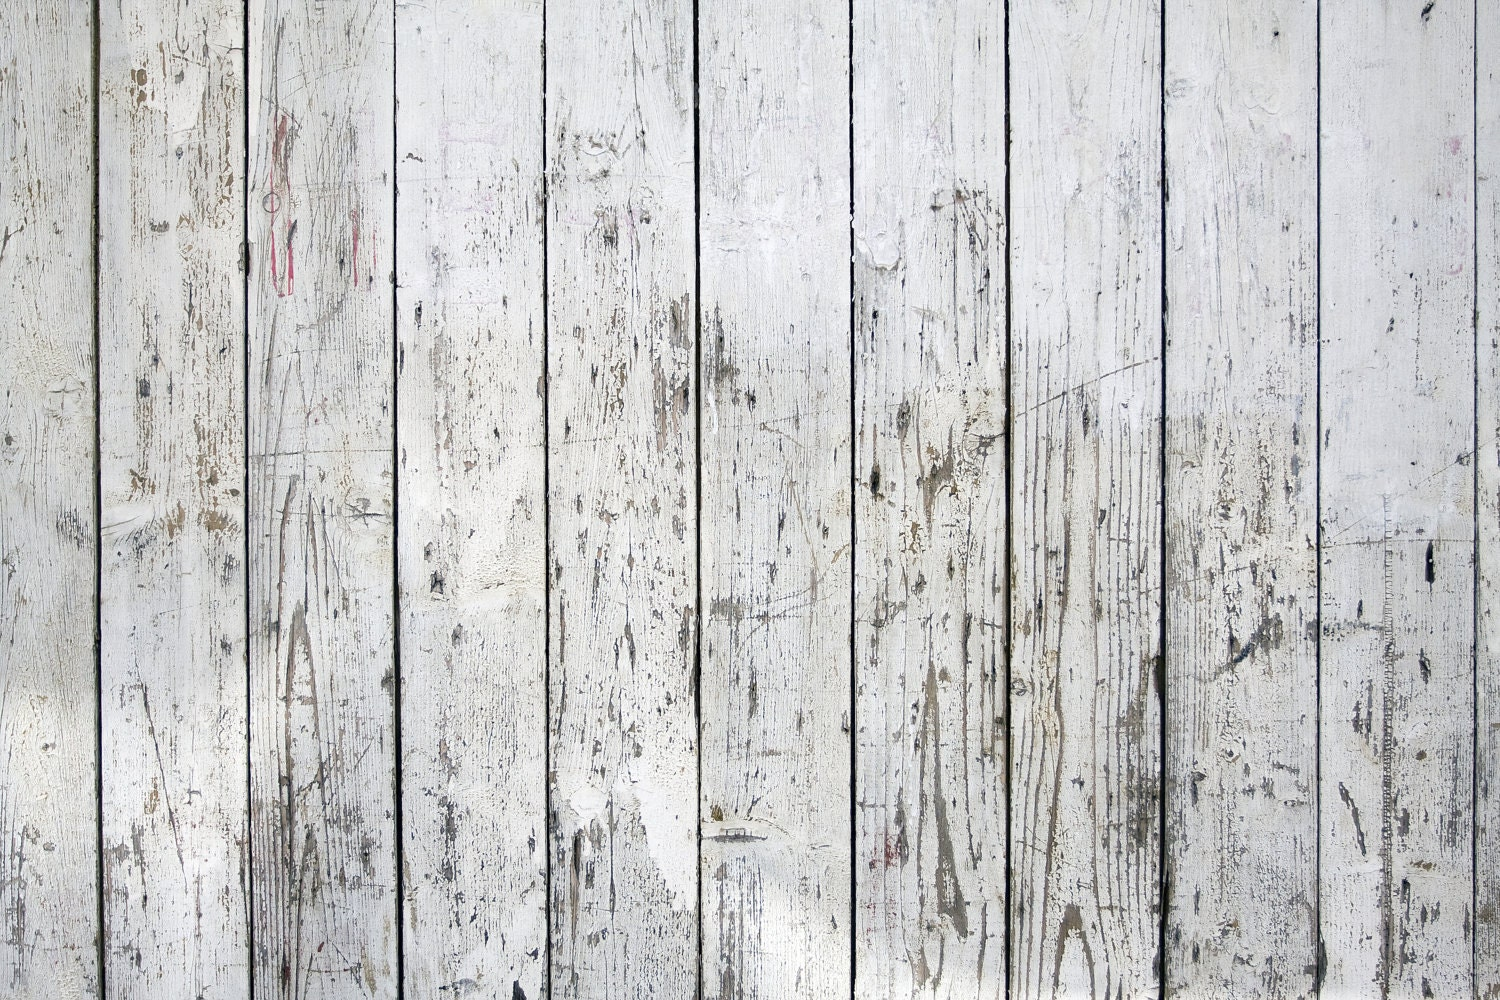 White Wood Wall : iPhone] iPhone 5 Wallpaper - Wood Only - Page 9 - MacRumors Forums